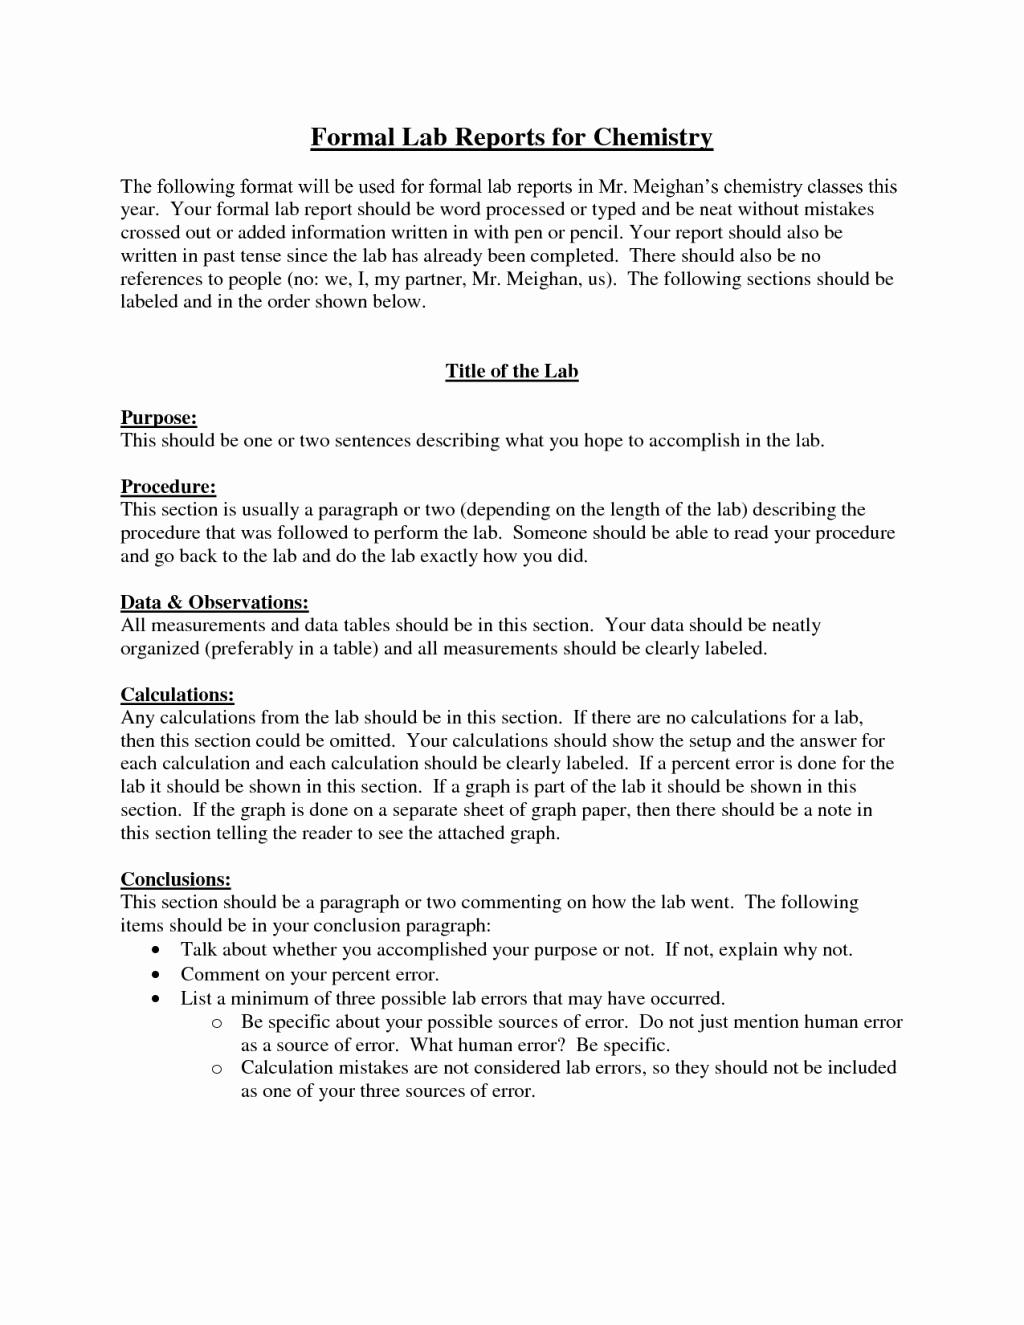 Formal Lab Report Template Beautiful formal Lab Reports for Chemistry 7 formal Lab Report